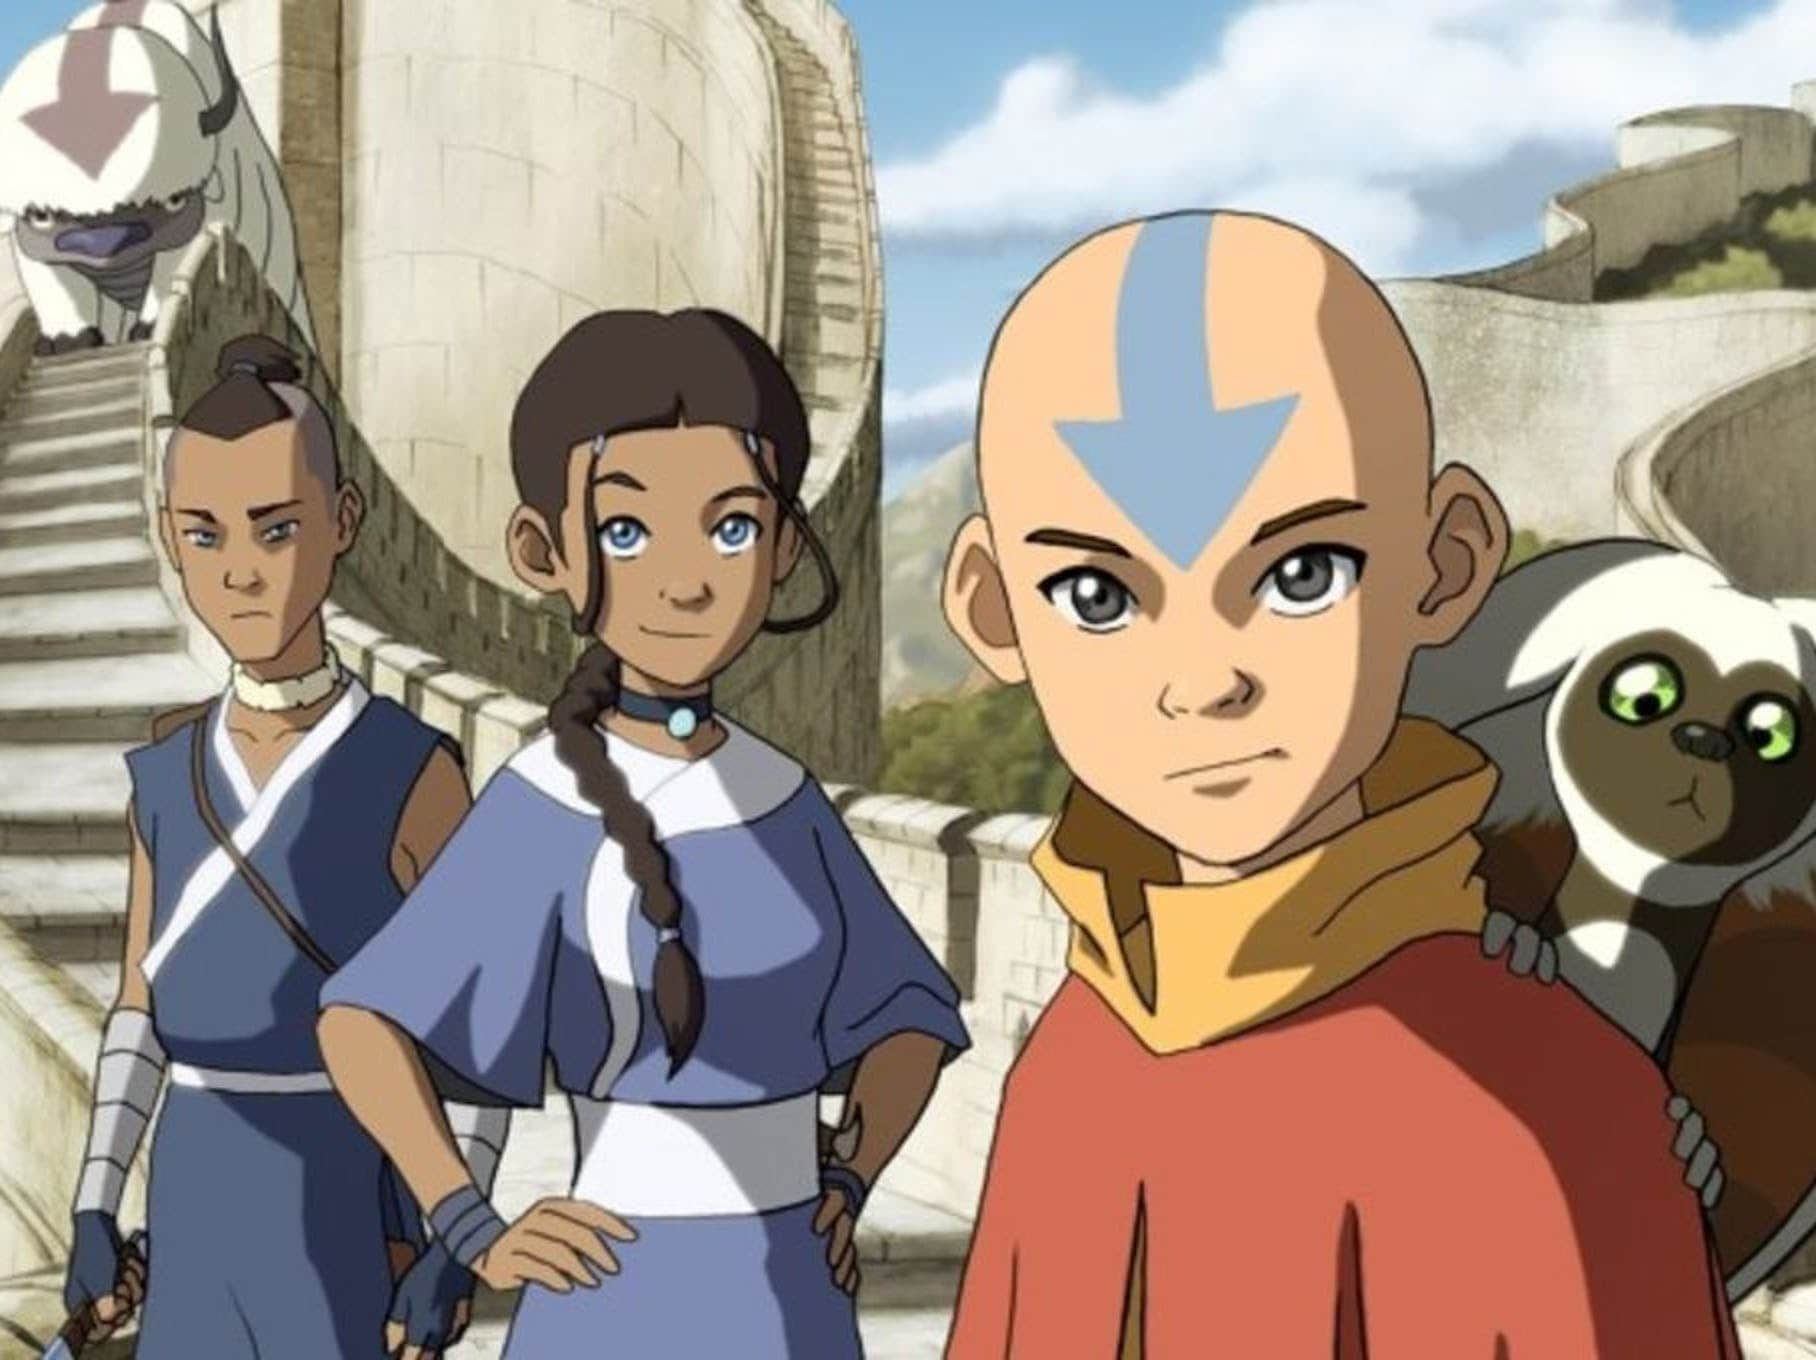 Avatar, The Last Airbender for Dummies